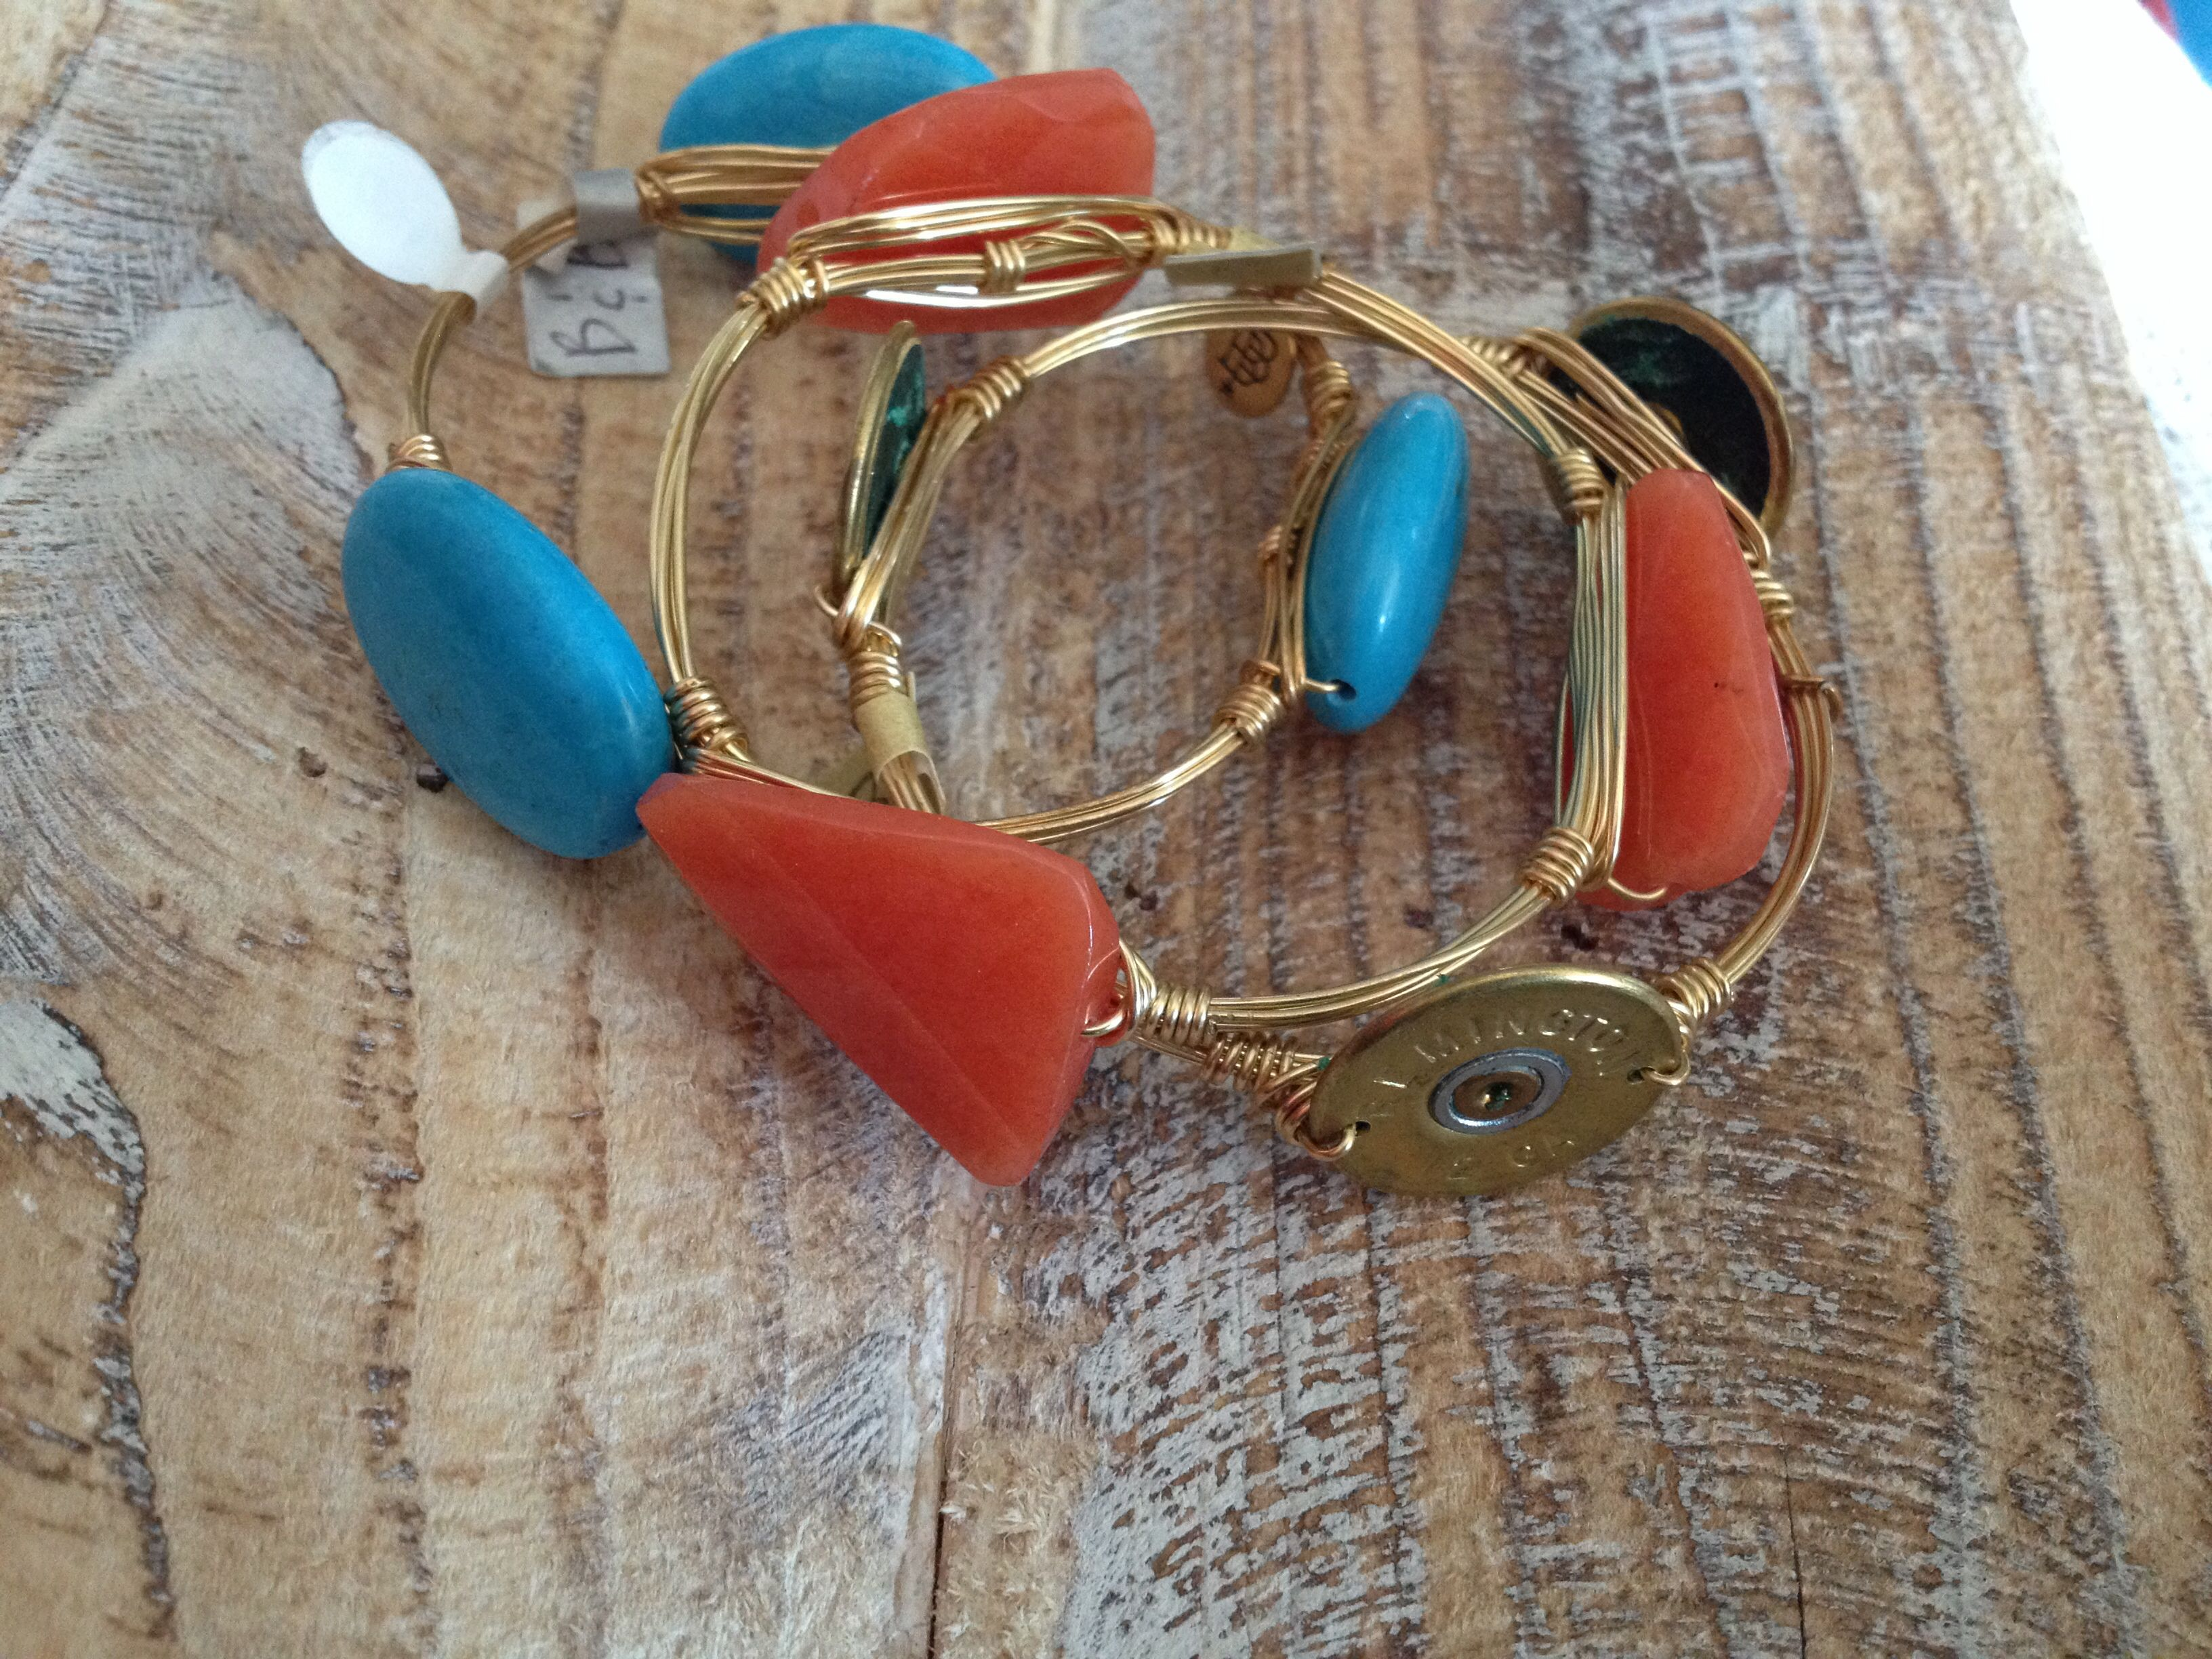 Bourbon and Boweties! Browse our Facebook album of In Stock bangles Facebook.com/twocumberland and message us to order! FREE SHIPPING!